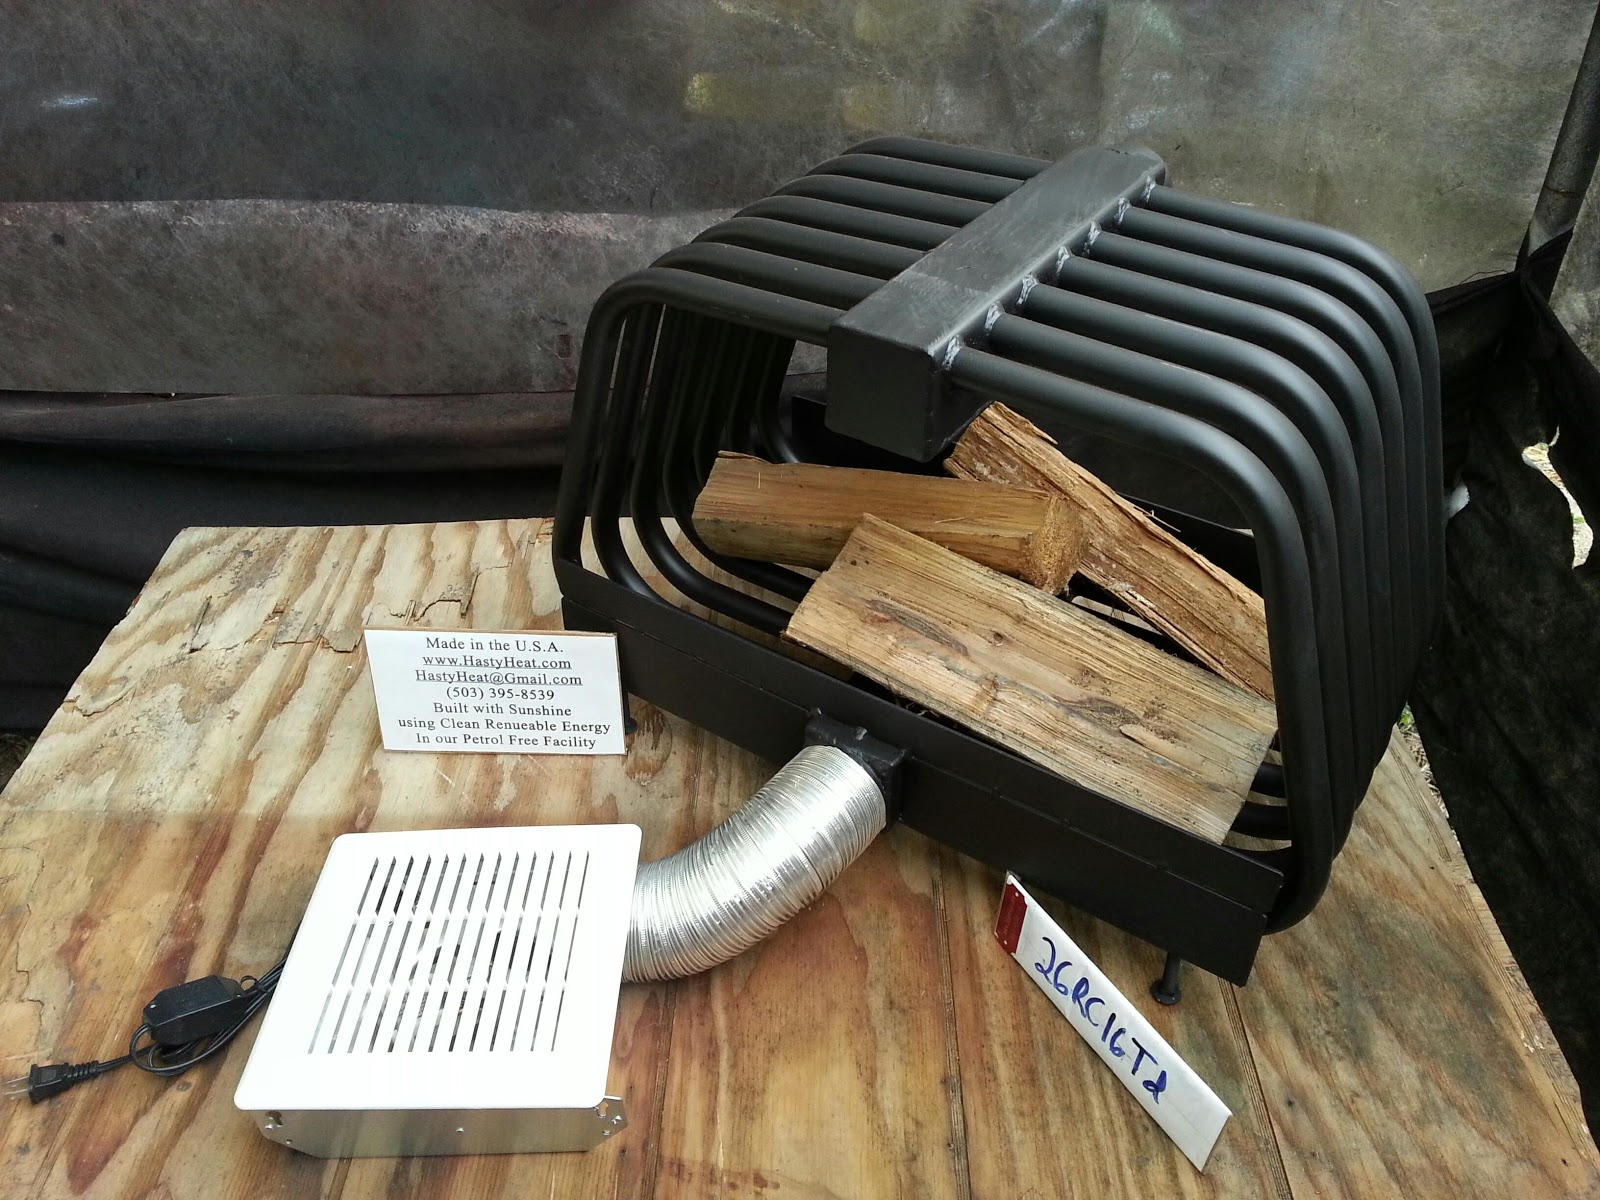 the wonderous fireplace accessories of hastyheat com august 2015